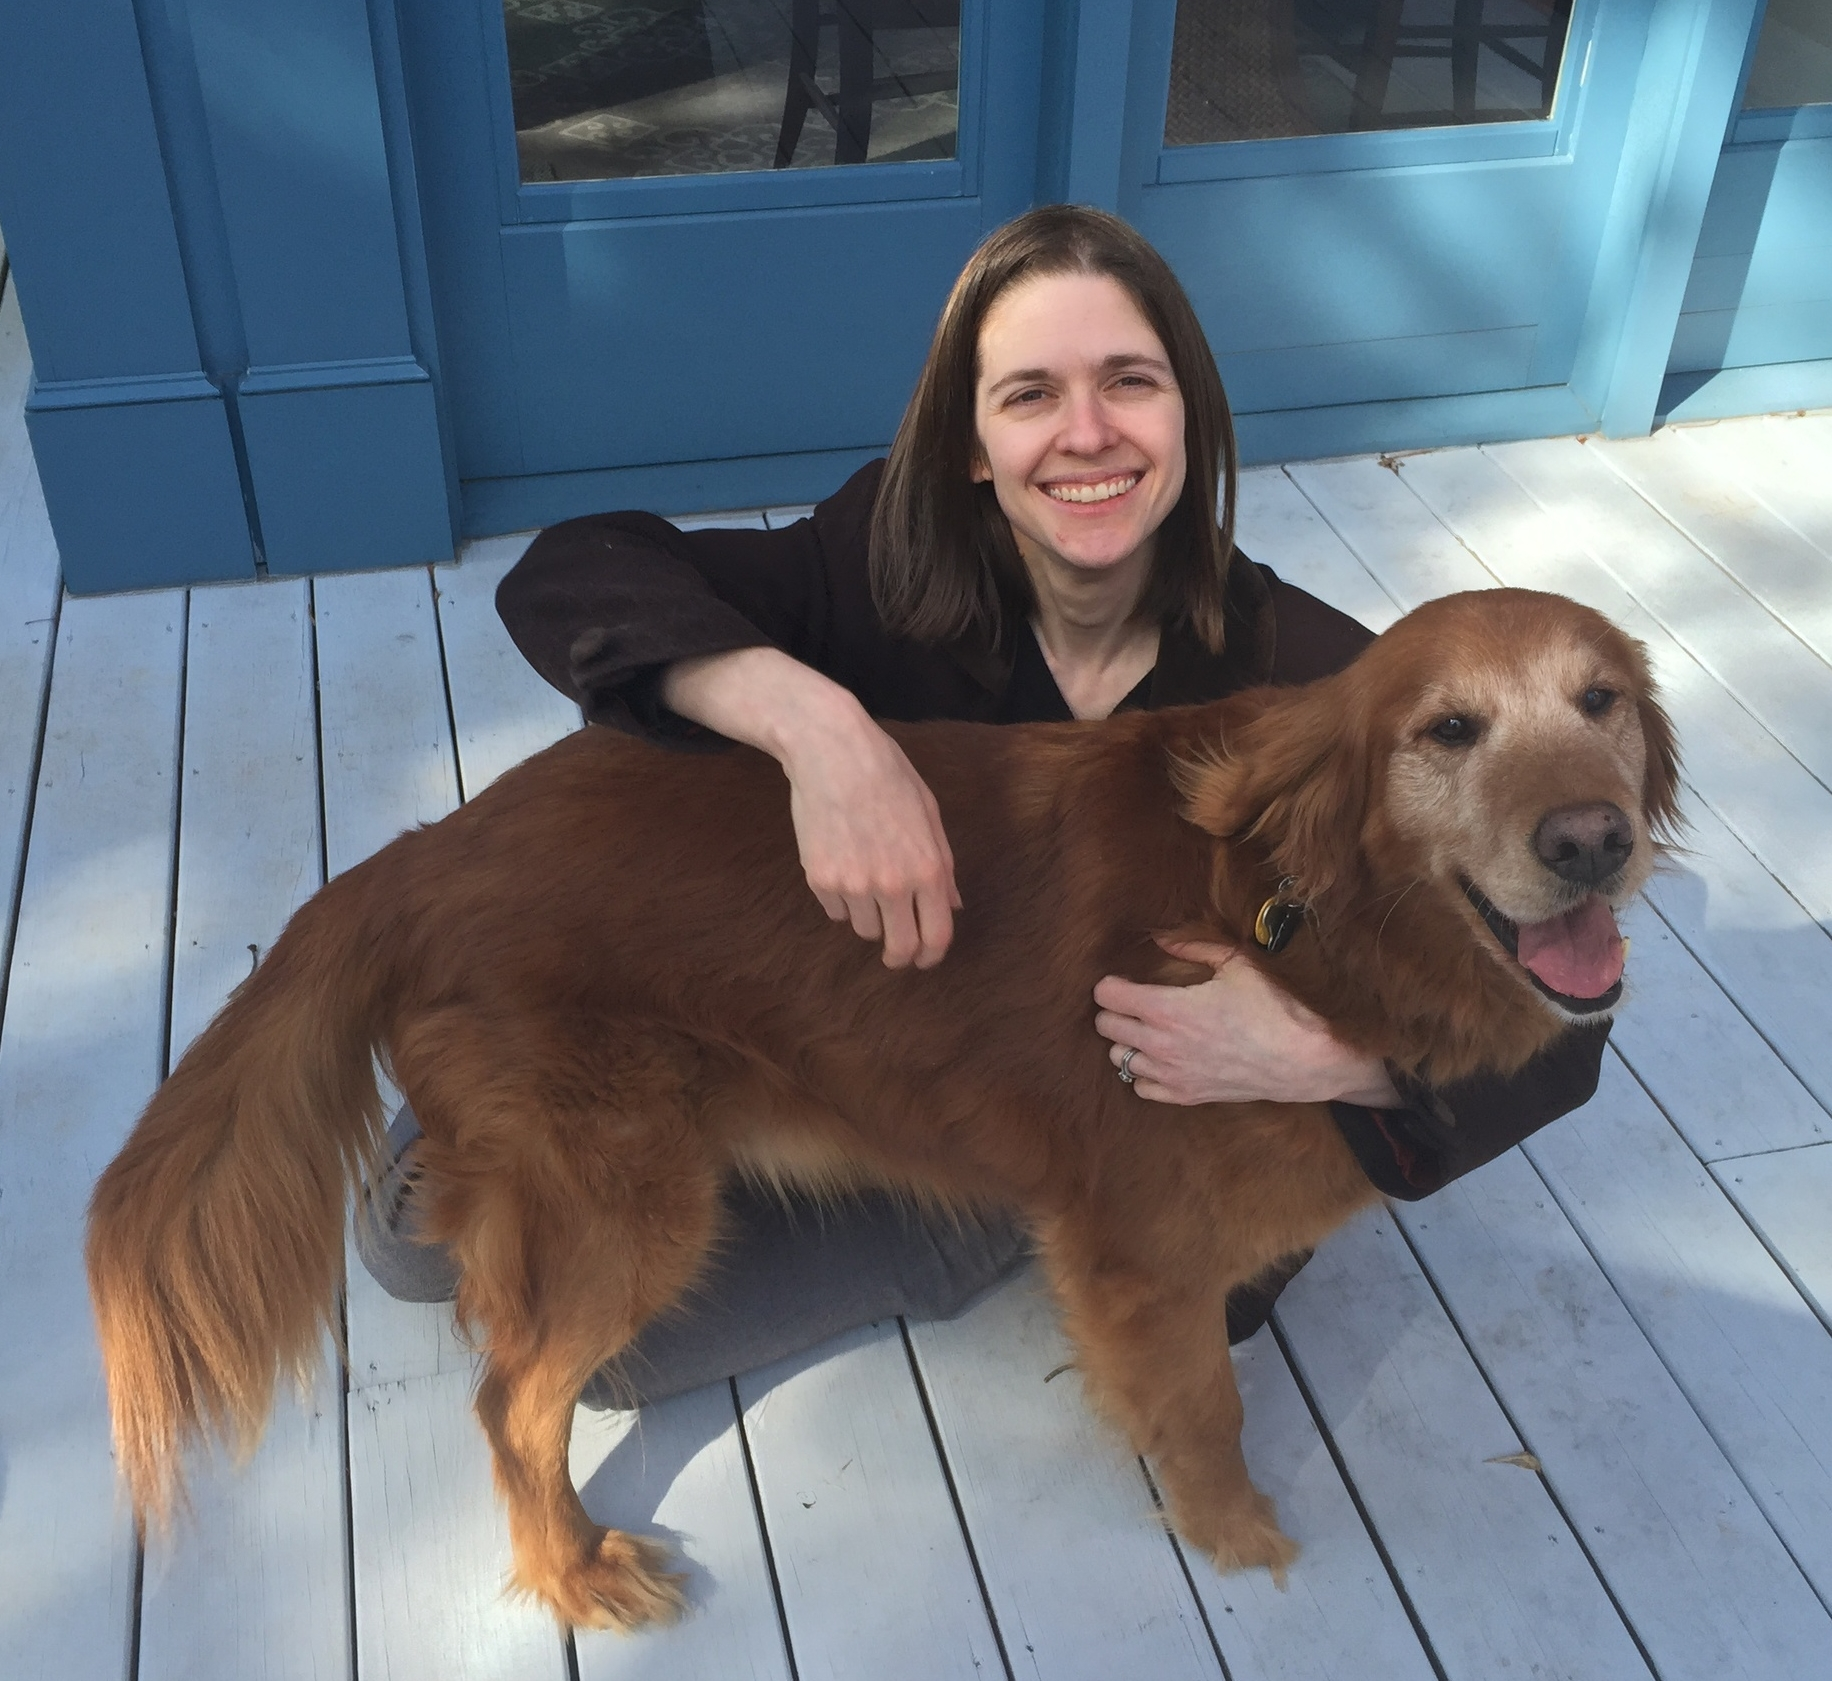 This is Cyd. This is not her dog.